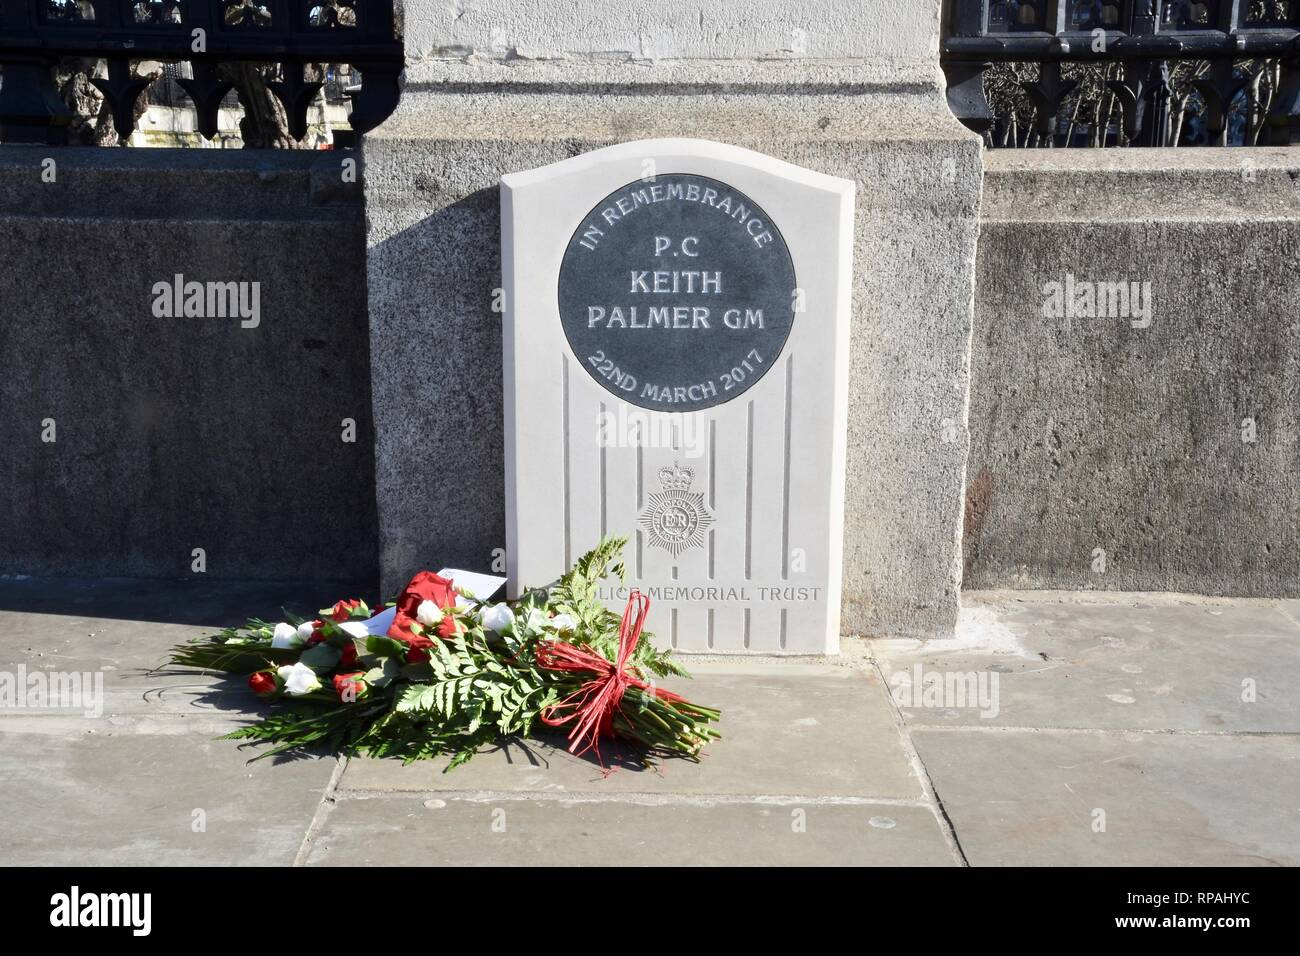 21st Feb 2019. Memorial to PC Keith Palmer who was killed in the Westminster Bridge Terror Attack.Carriage Gates,Houses of Parliament, Westminster, London.UK Credit: michael melia/Alamy Live News - Stock Image